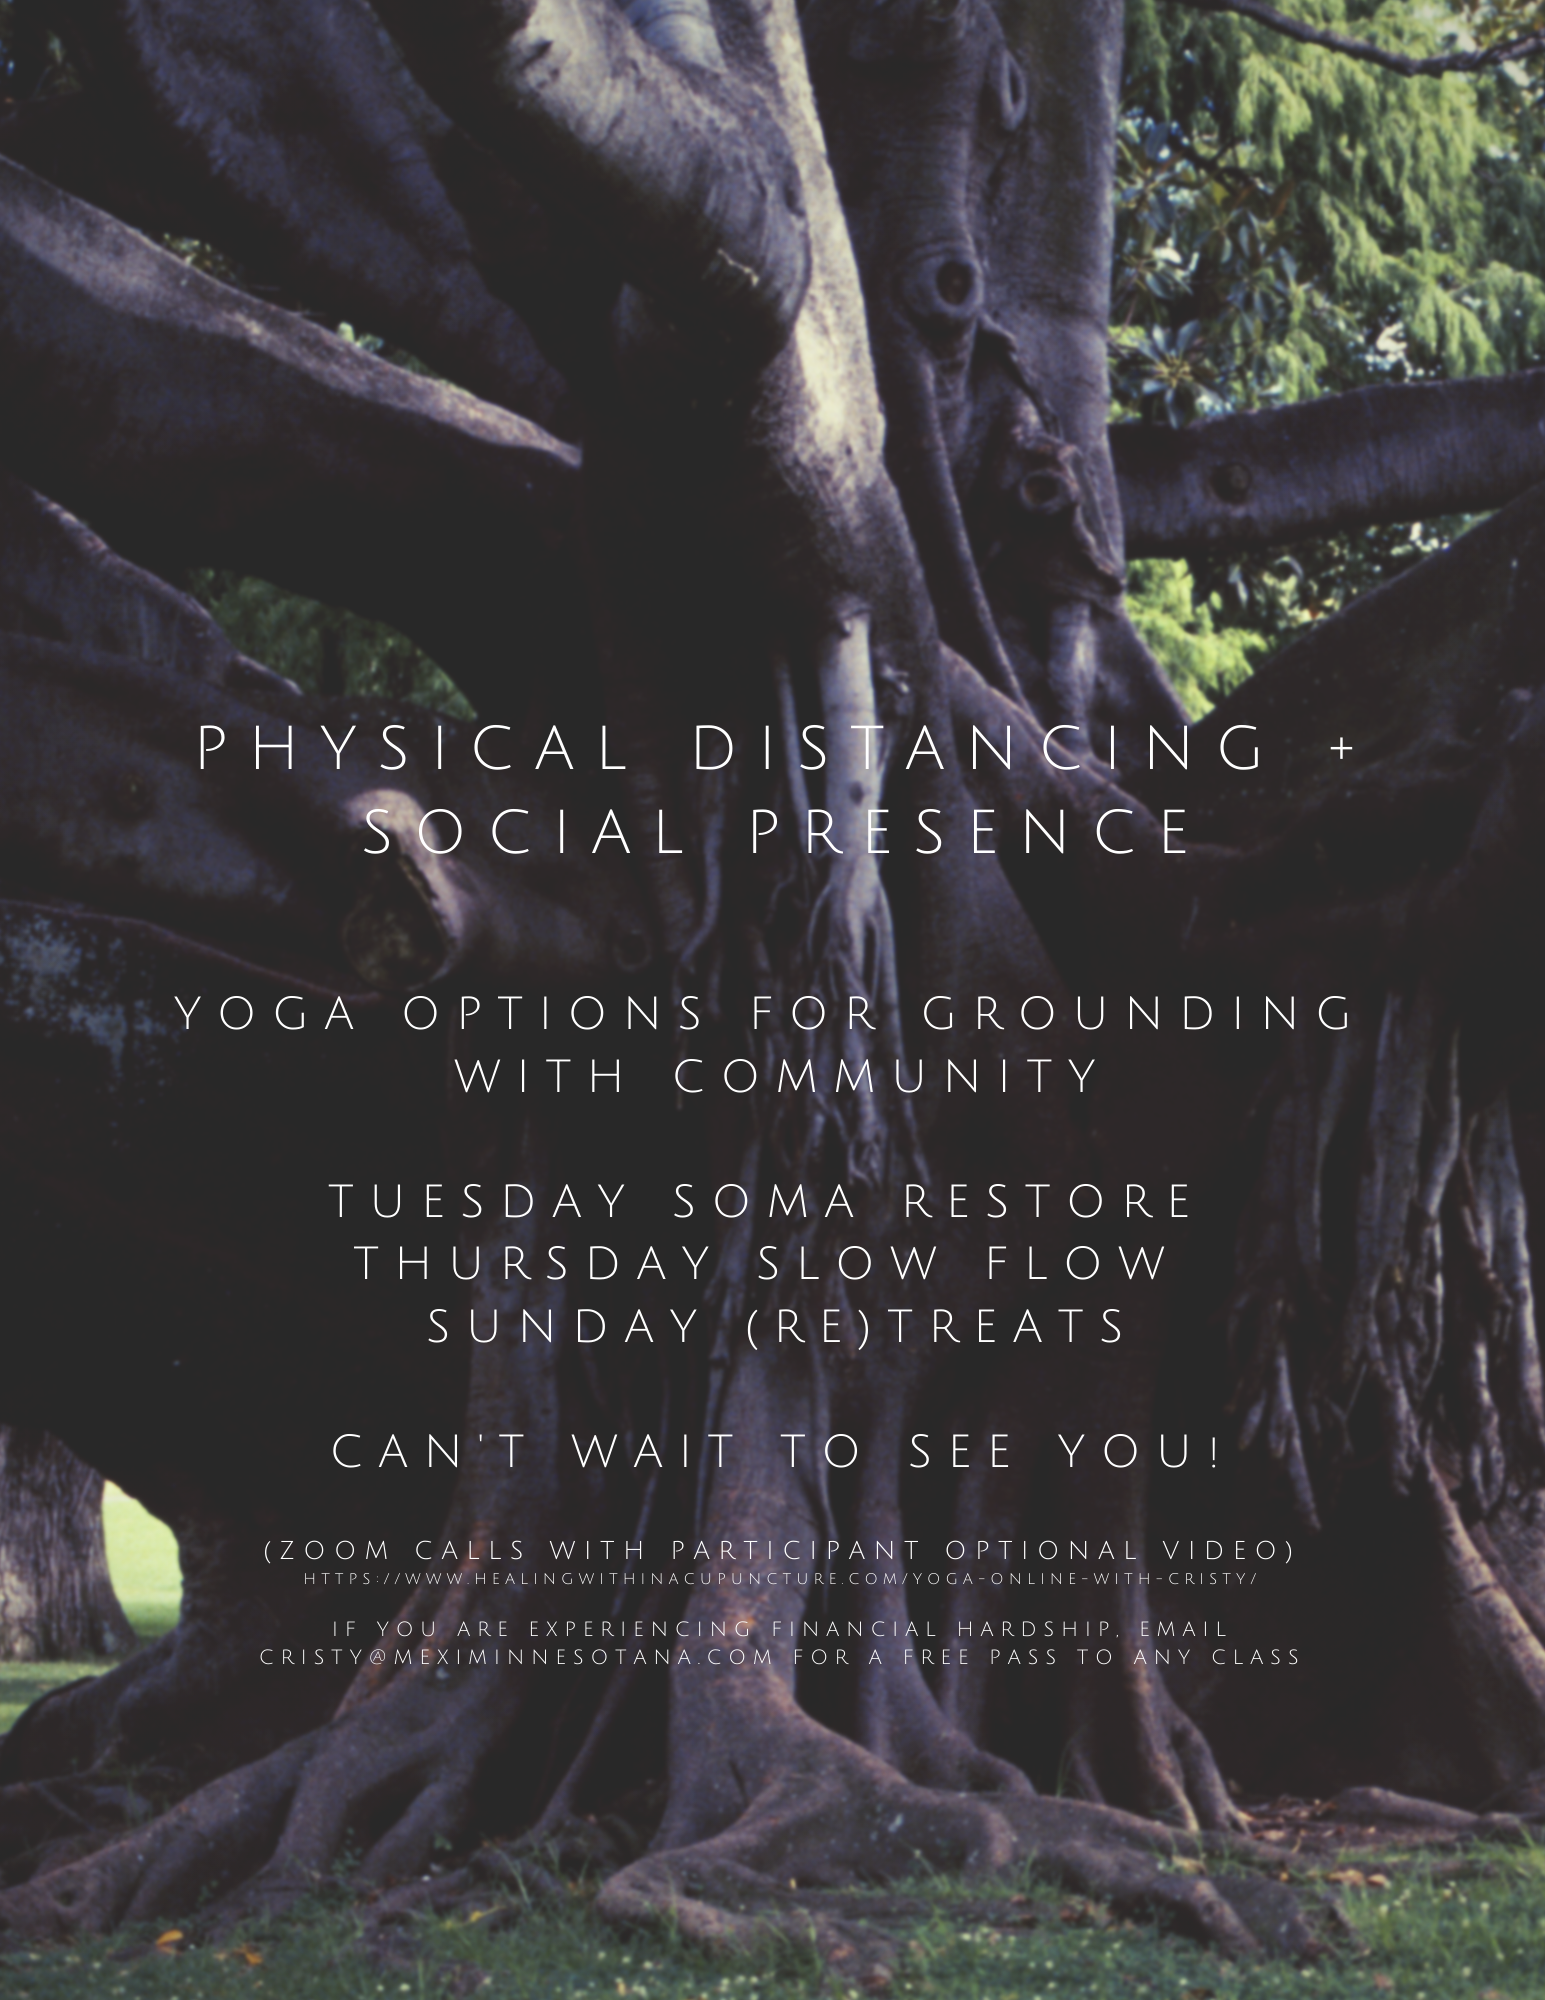 Physical distancing and presence